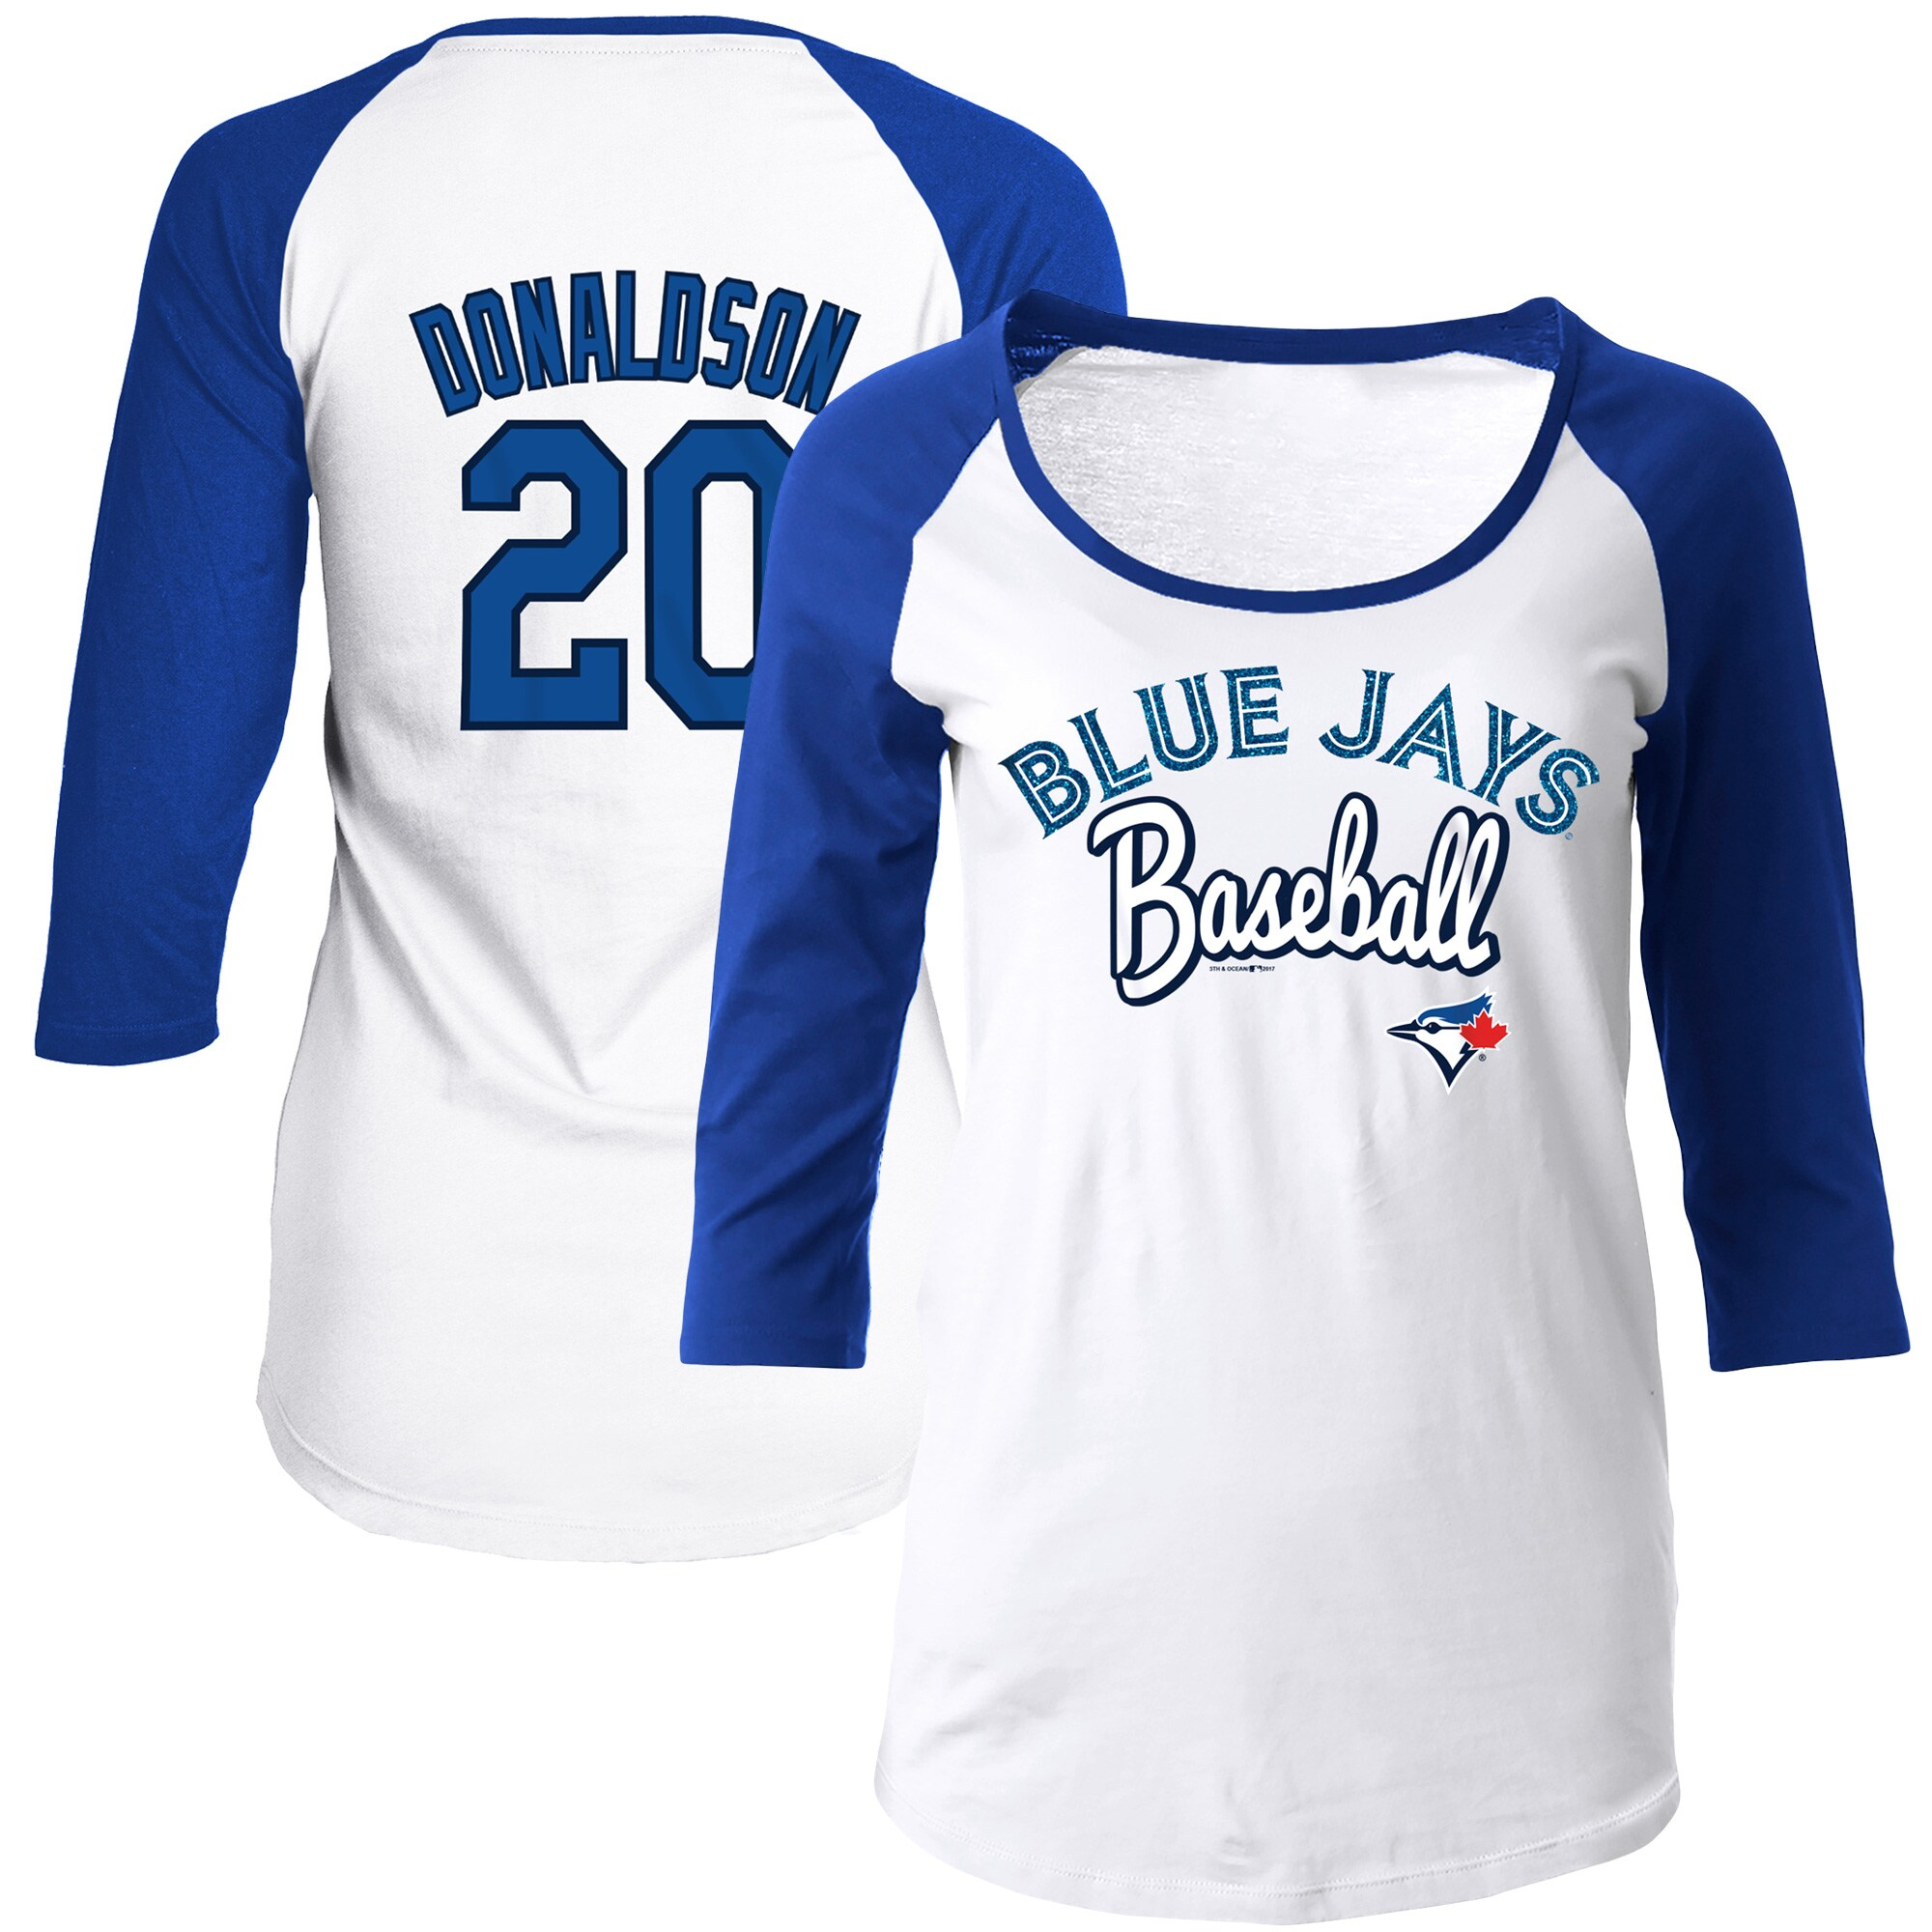 Josh Donaldson Toronto Blue Jays 5th & Ocean by New Era Women's Glitter 3/4-Sleeve Raglan T-Shirt - White/Royal